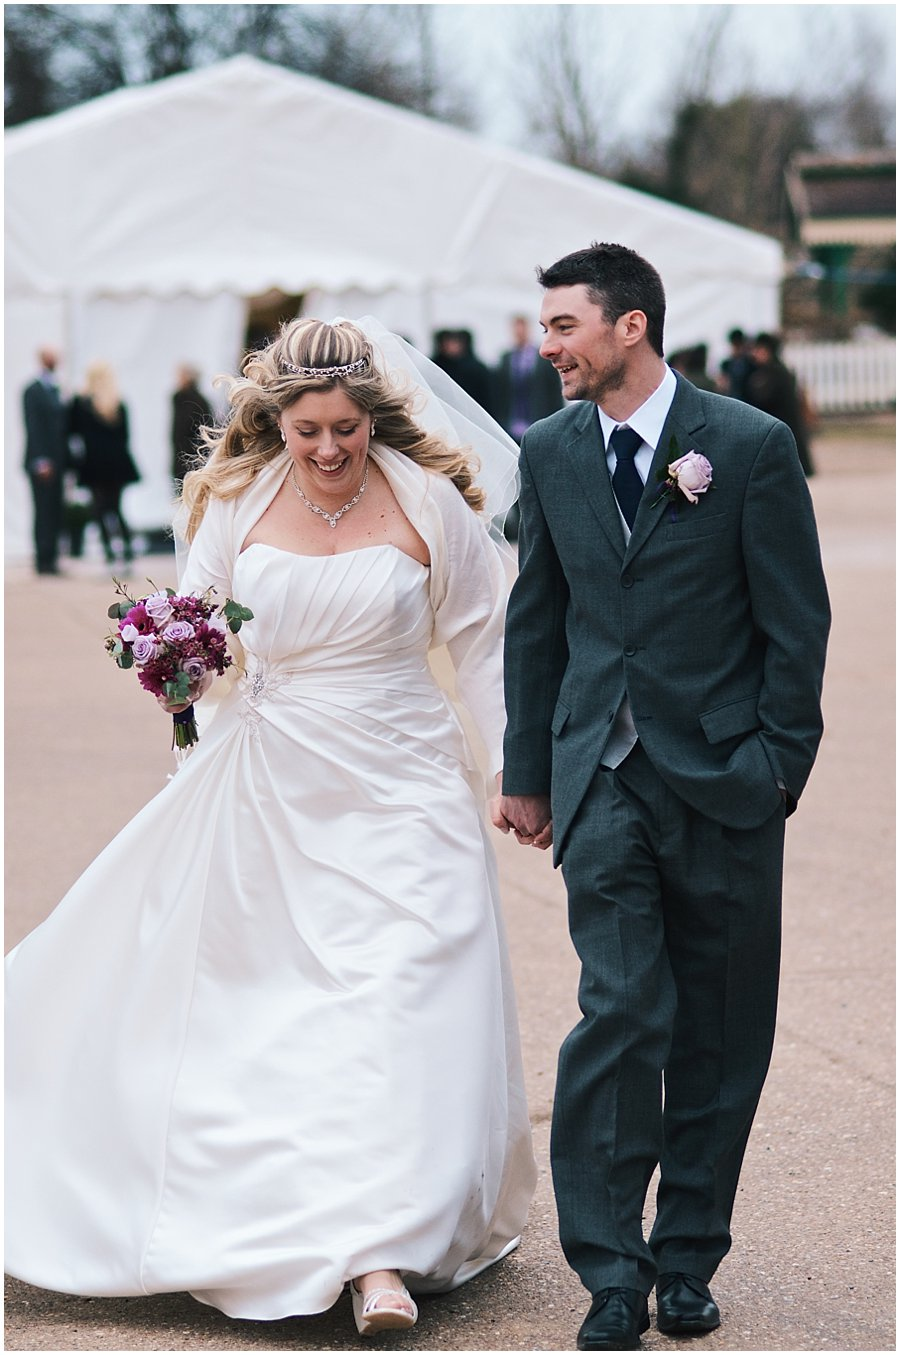 bride and groom walking together at red brick barn